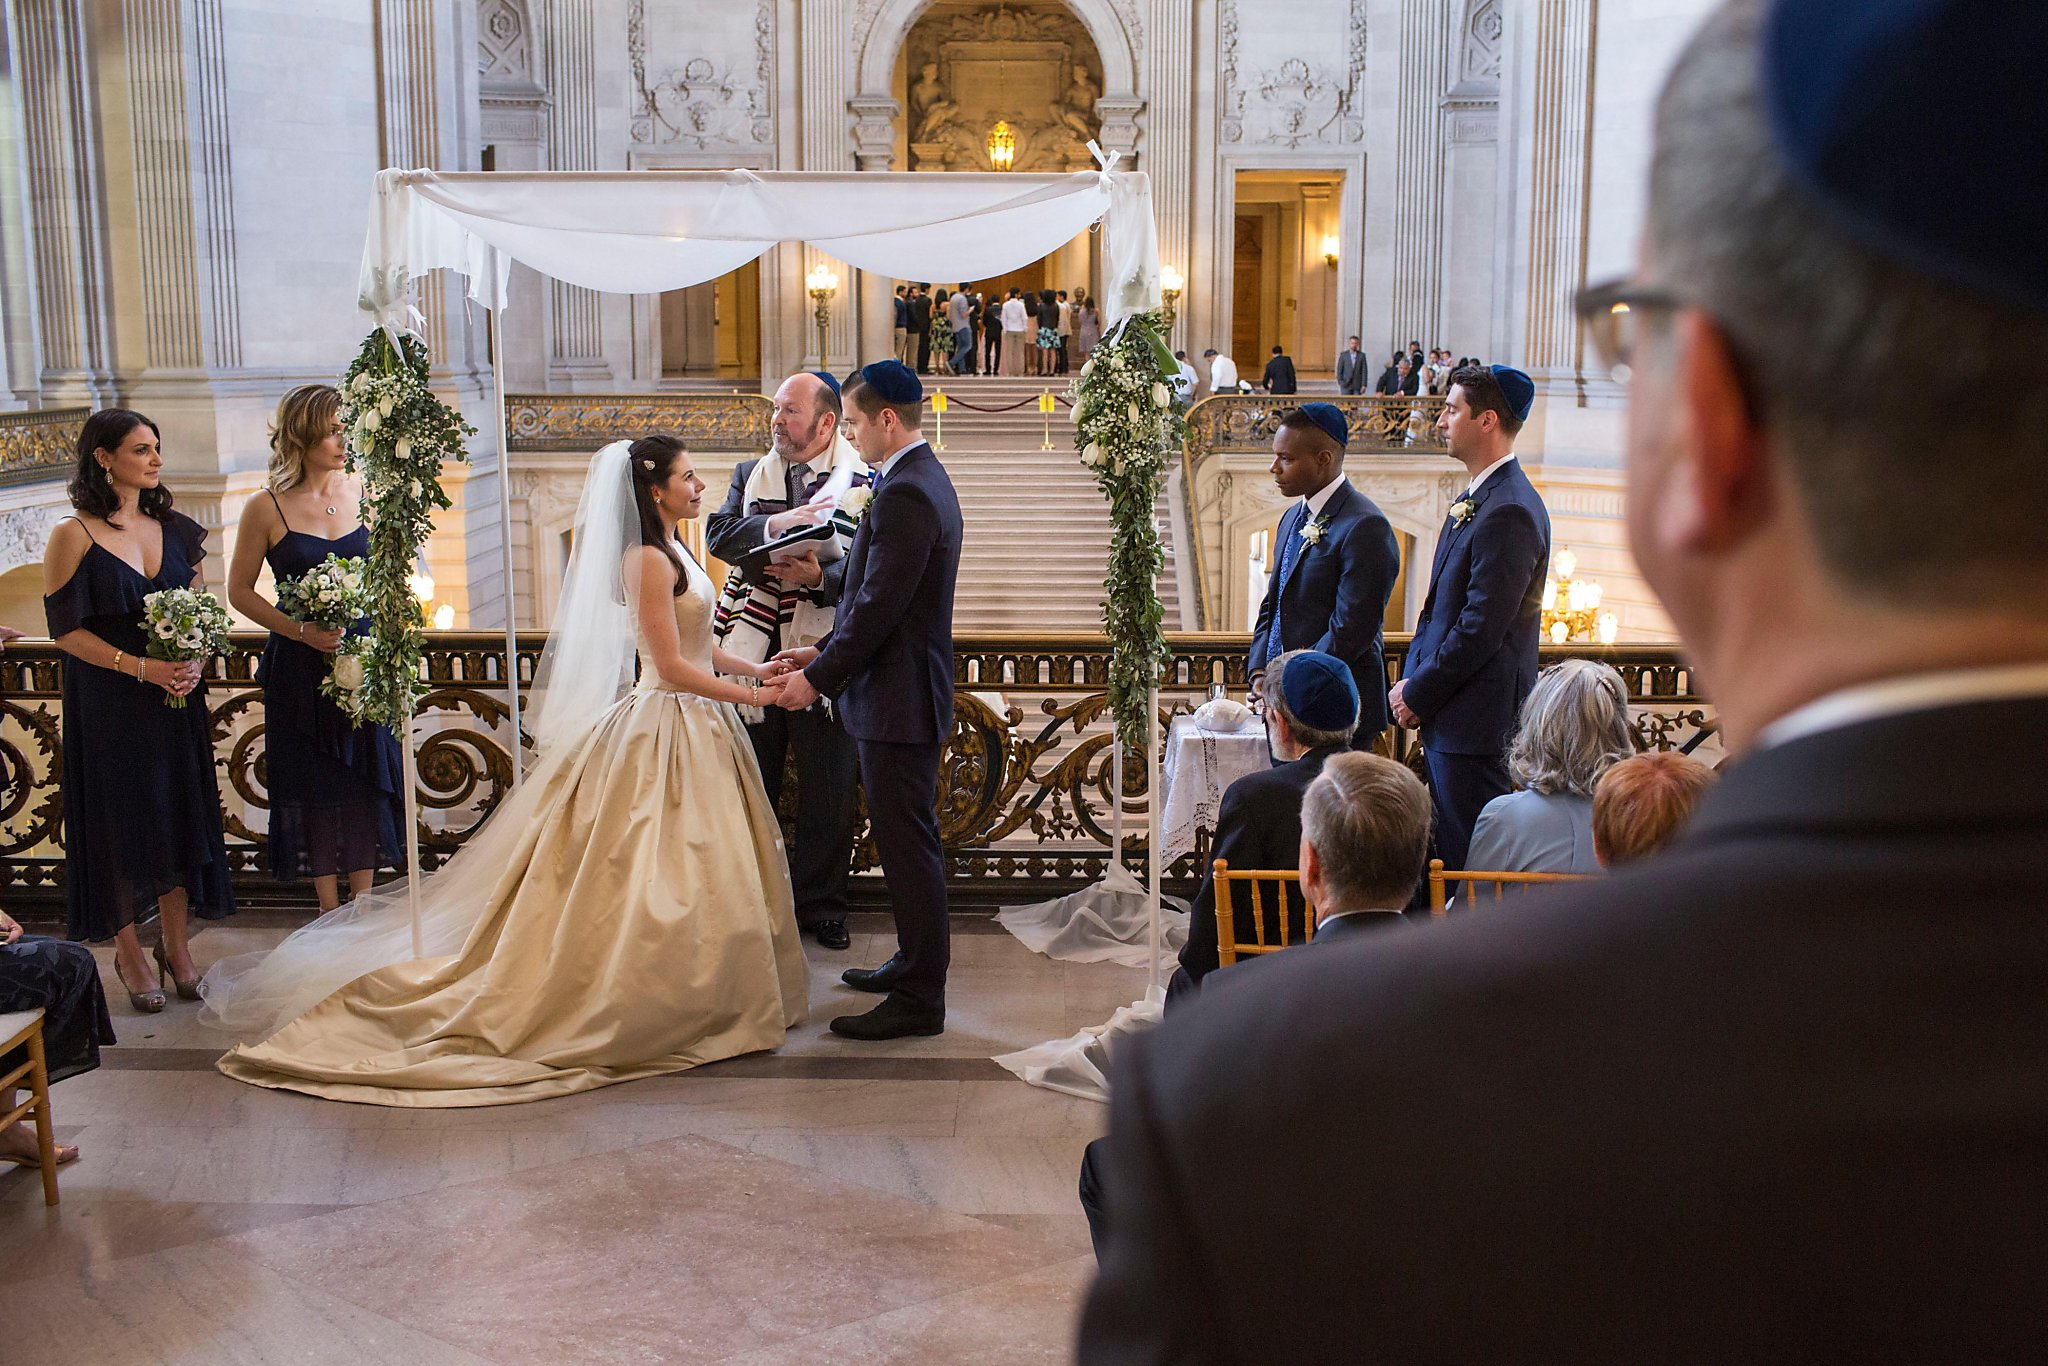 San Francisco Courthouse Wedding.A Day Of I Do S At City Hall San Francisco Chronicle